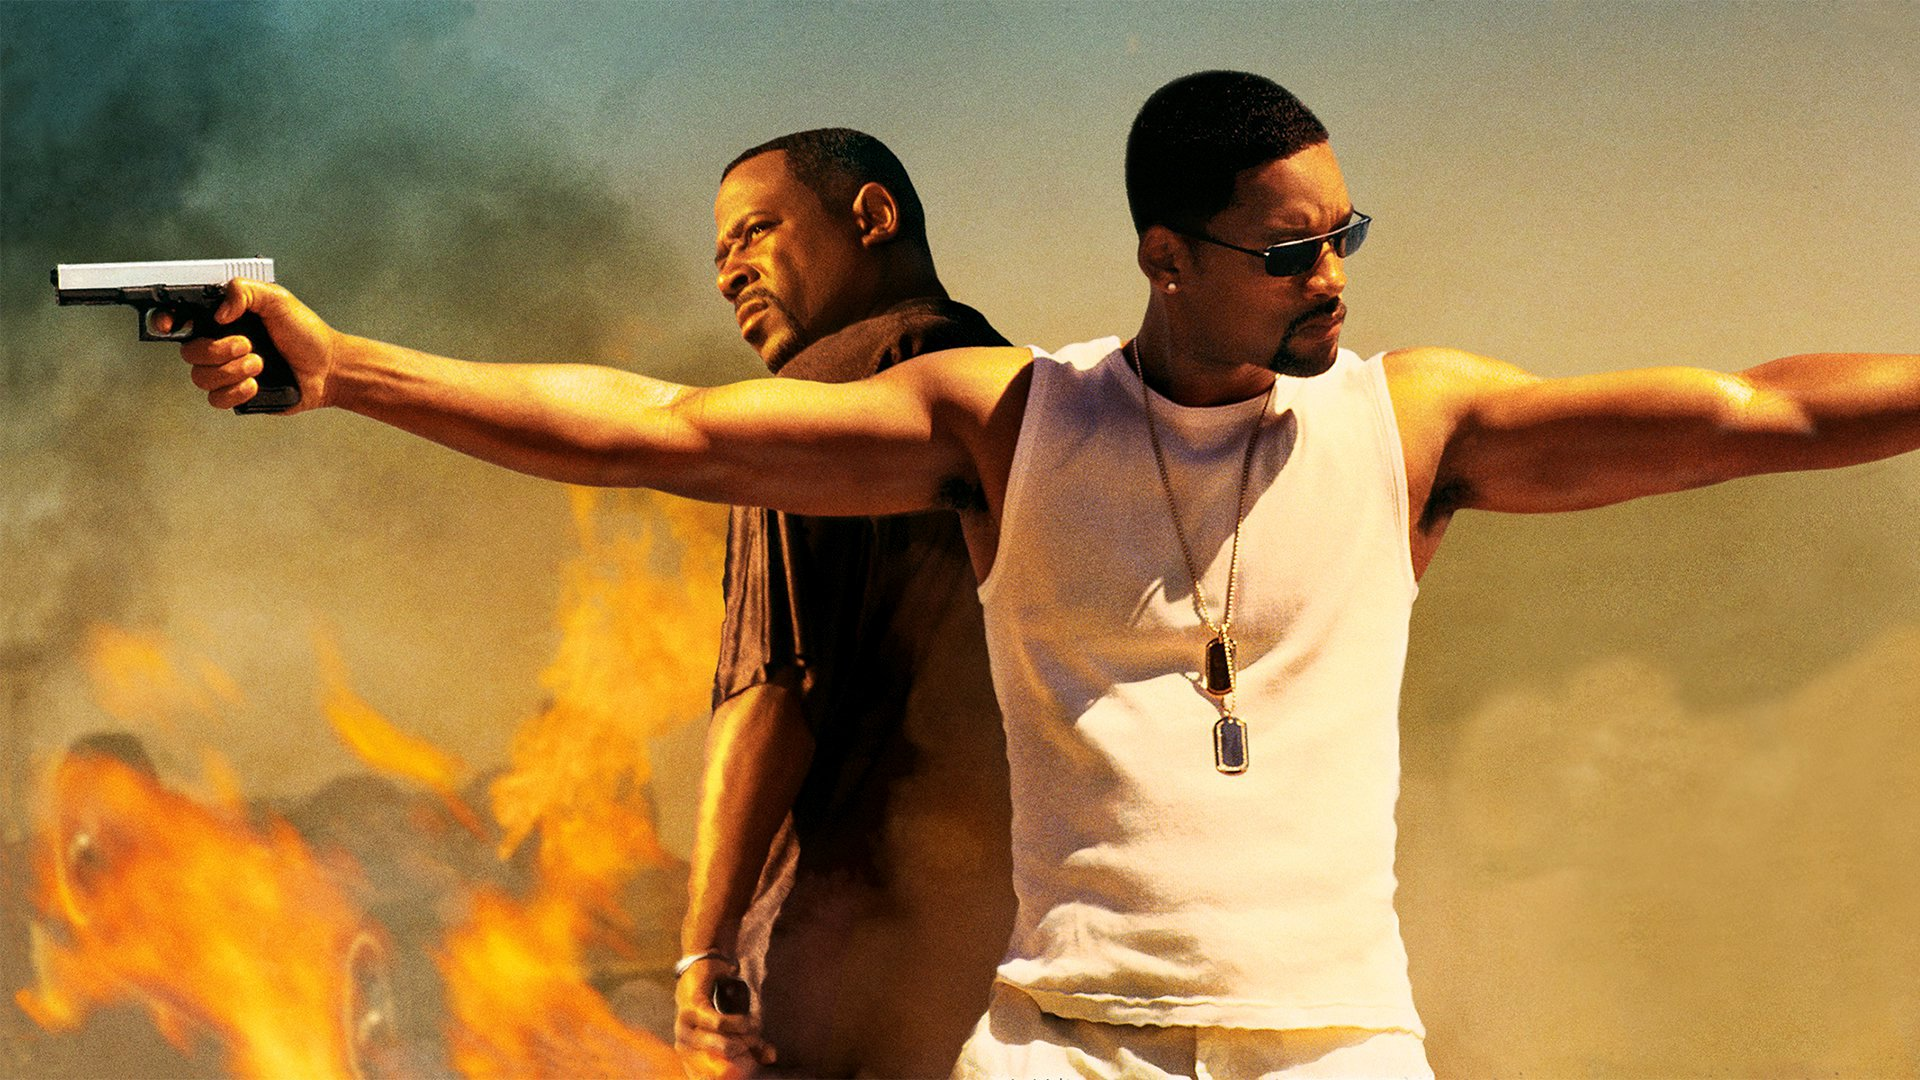 Bad Boys 3 is still happening, has new directors, shoots in August screenshot